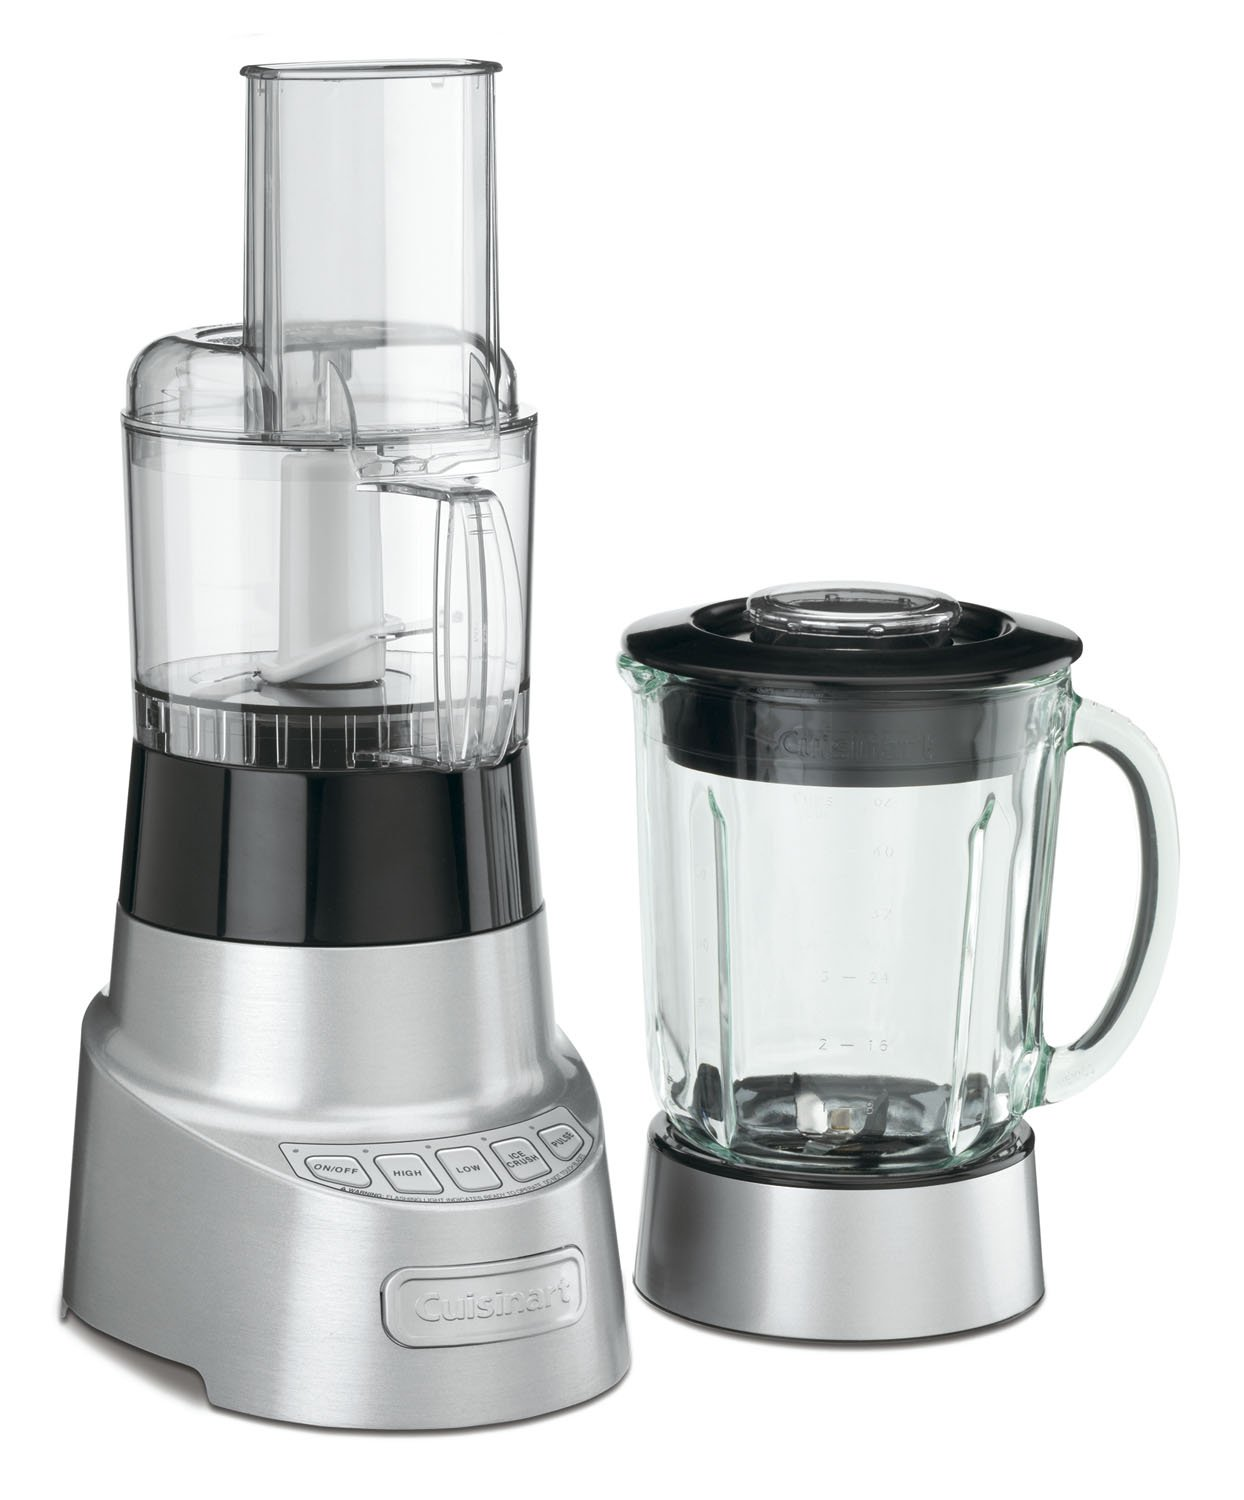 Cuisinart BFP-603 SmartPower Deluxe Blender and Food Processor DISCONTINUED